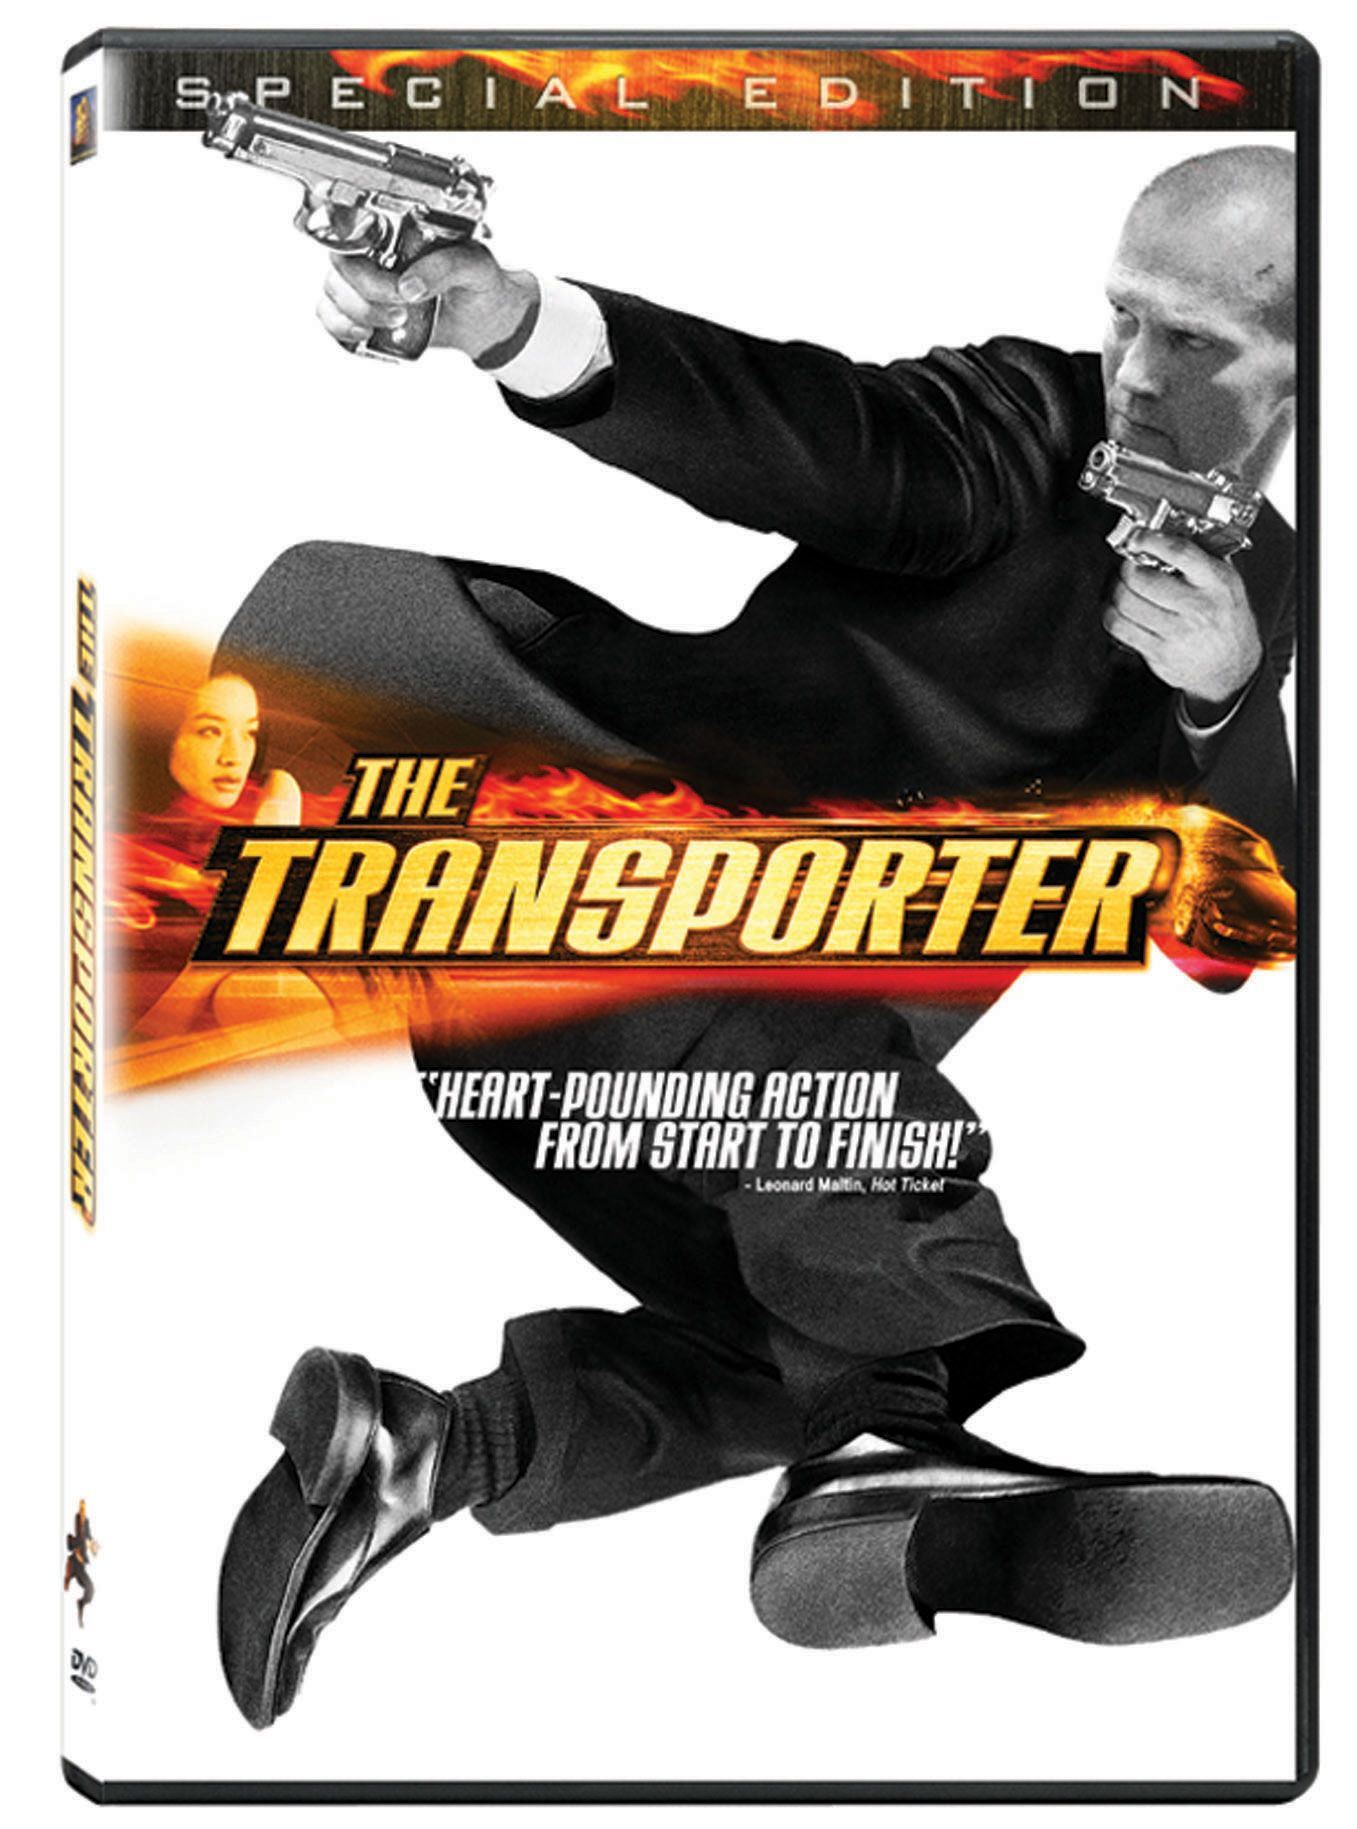 The Transporter | Book tv, Movies and tv shows, Tv show music